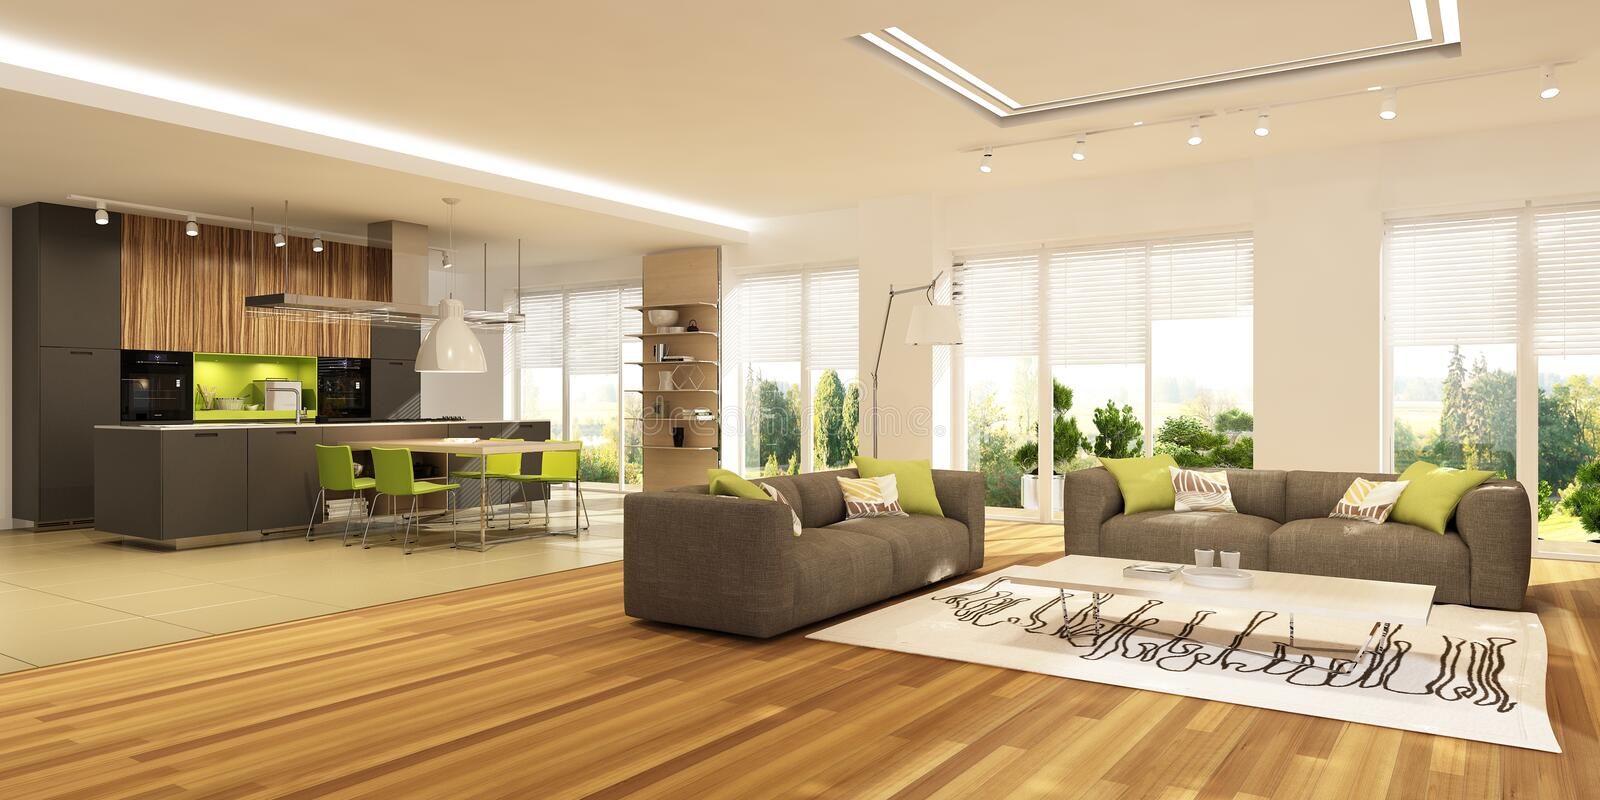 Modern interior of living room with the kitchen in a house or apartment in grey colors with green accents royalty free stock photos